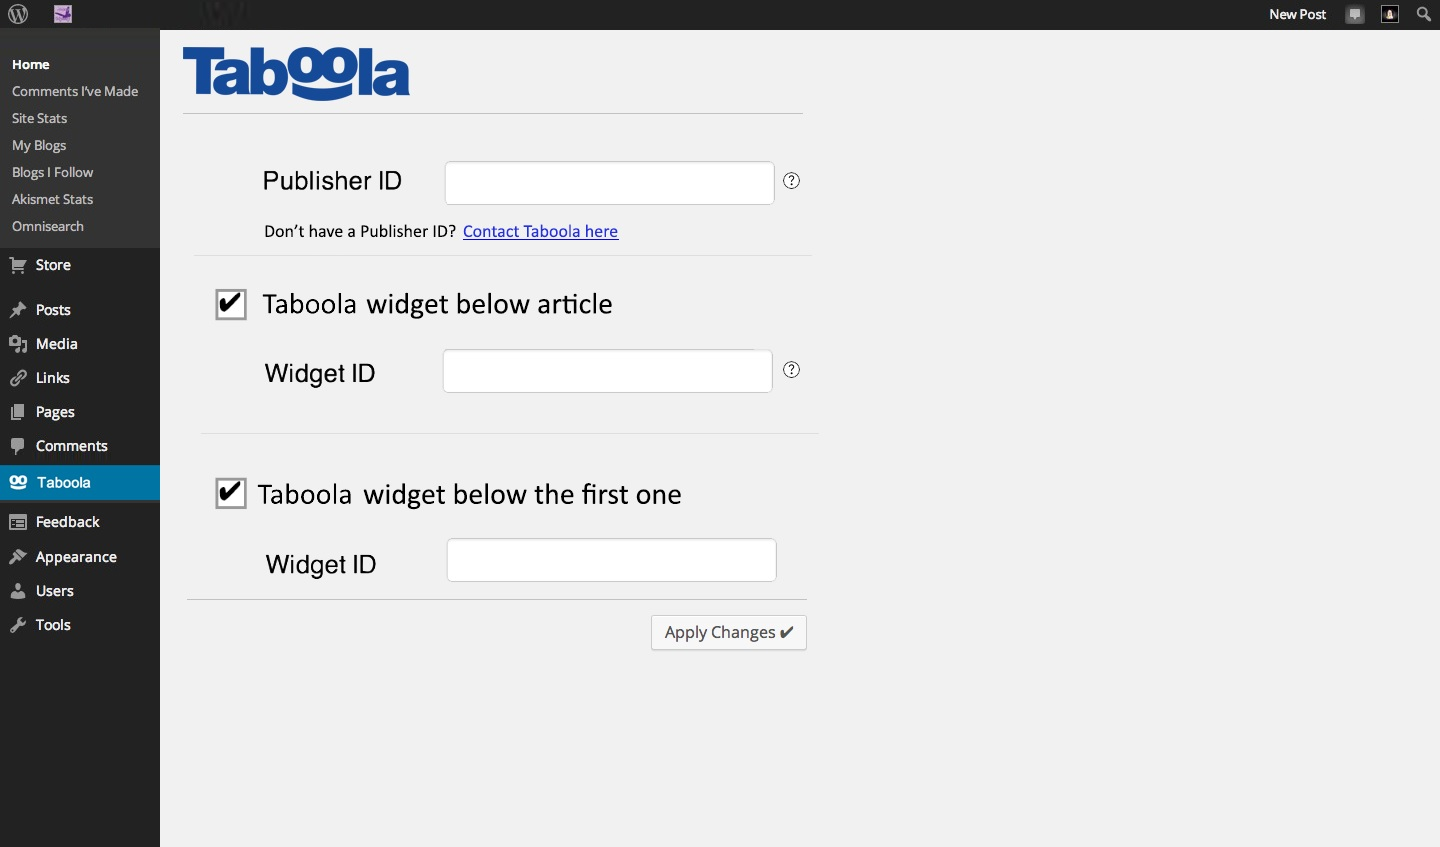 taboola screenshot 1